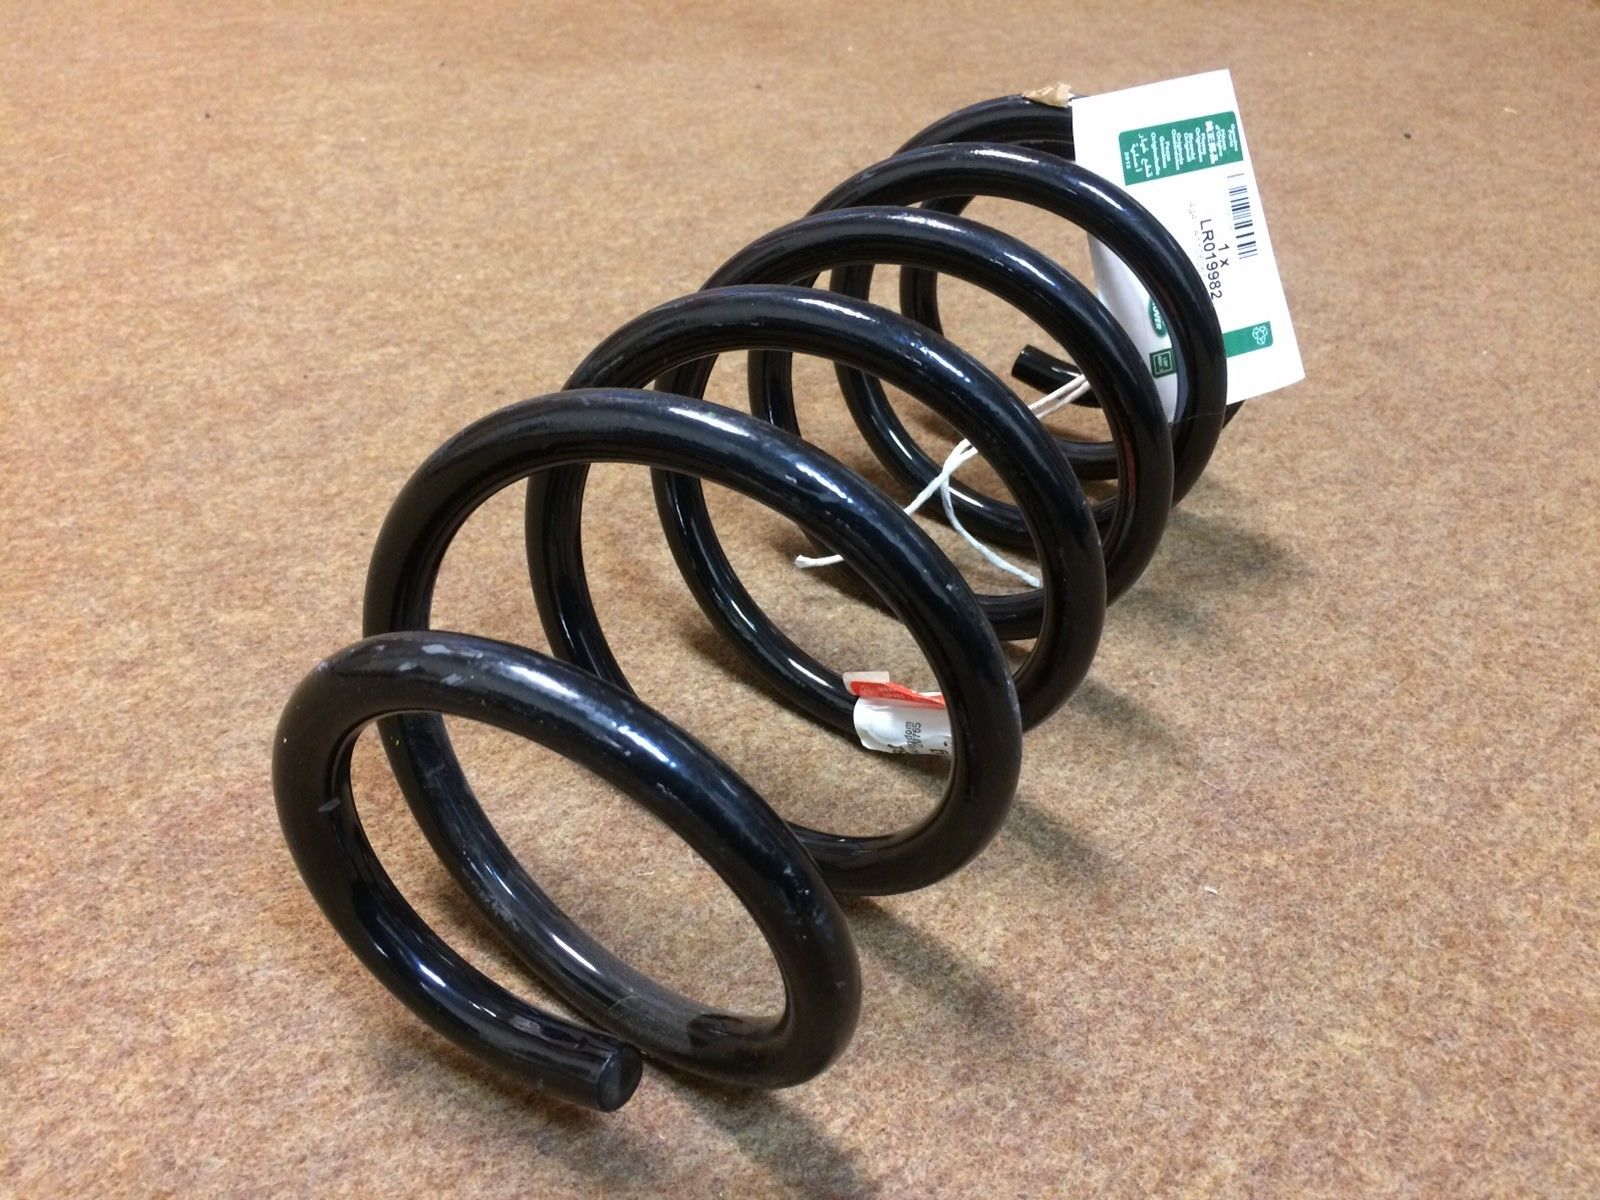 LAND ROVER FREELANDER 2 REAR COIL SPRING SUNROOF MODEL – LR019982.